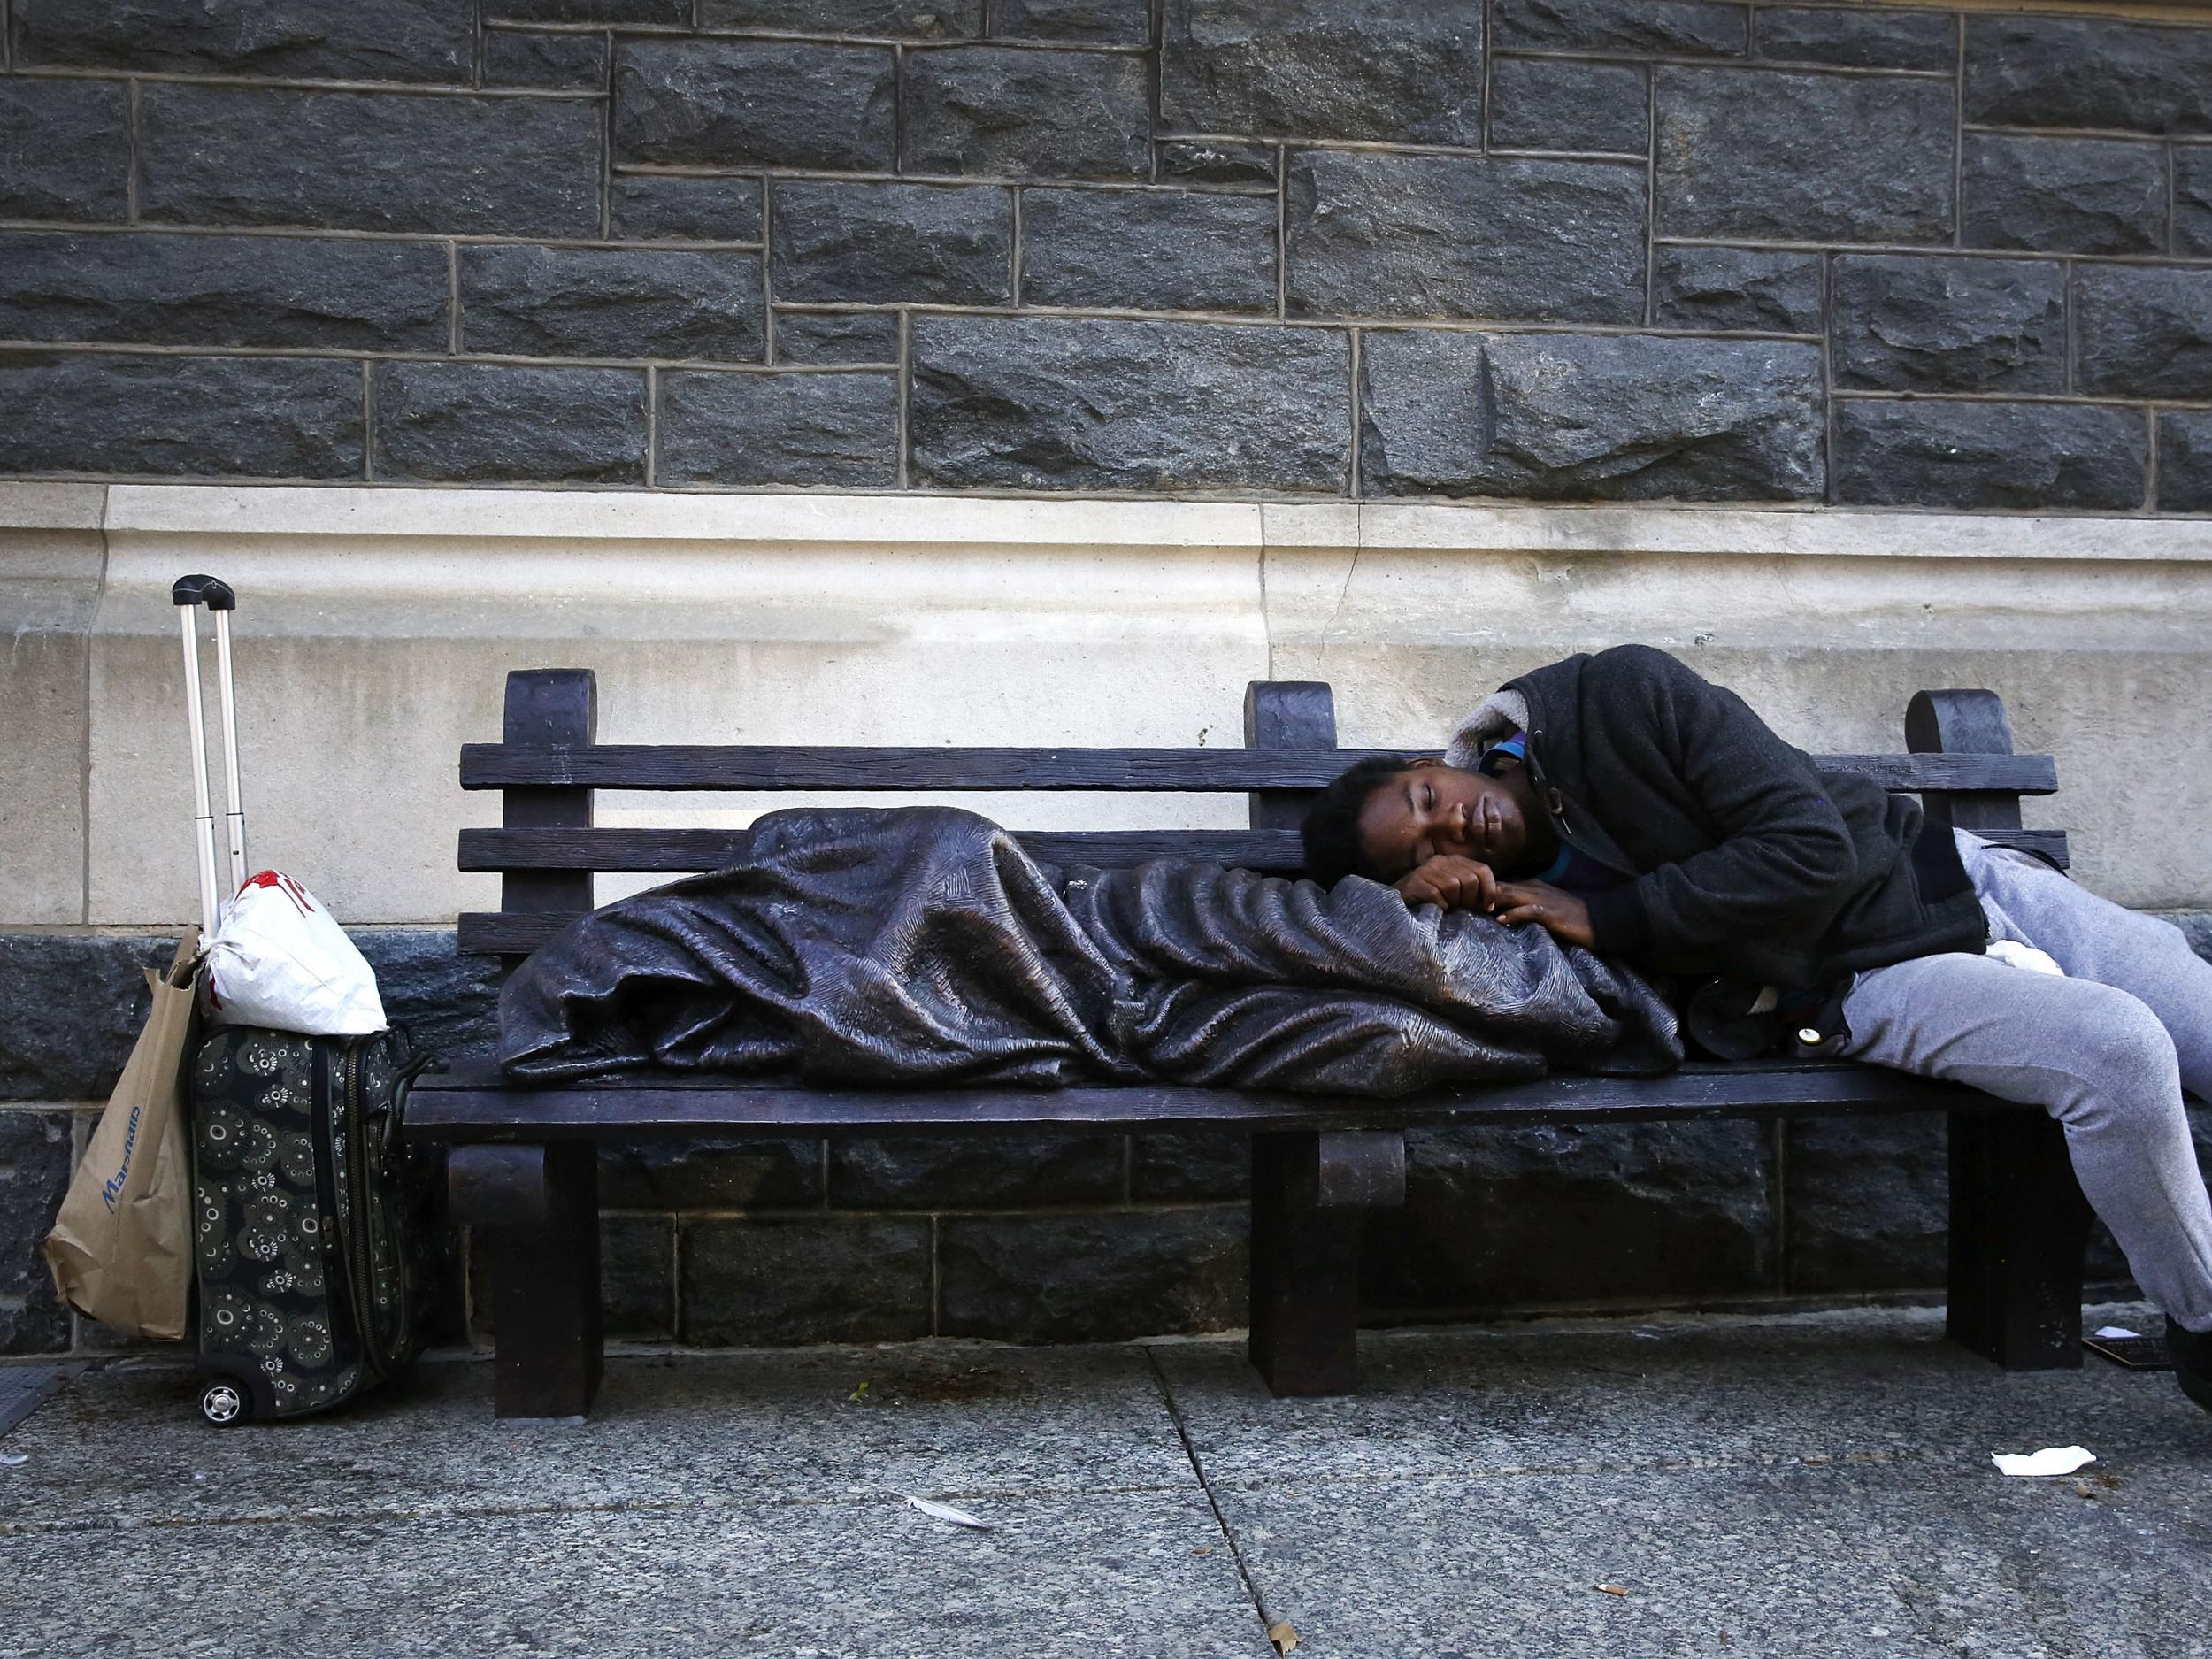 Colorado city will use $1.5 million cannabis tax revenues to help the homeless   Americas   News   The Independent